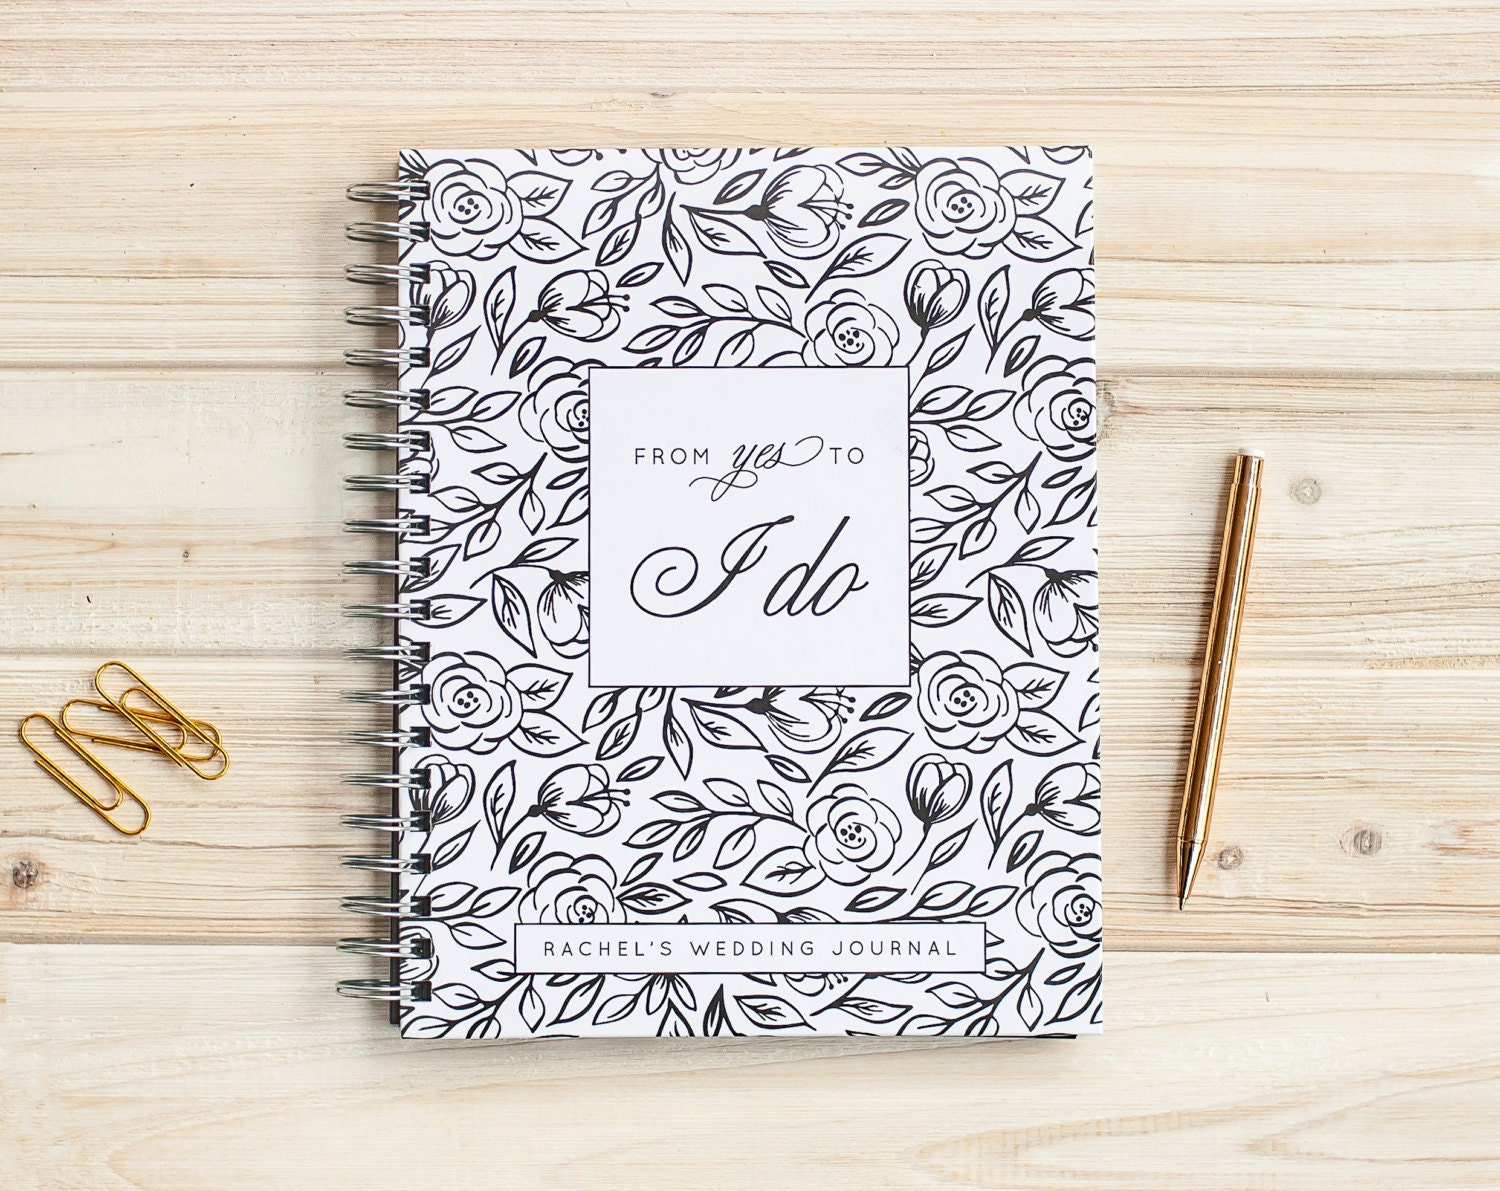 Wedding journal personalized wedding planner book wedding binder wedding journal personalized wedding planner book wedding binder wedding planner wedding notebook wedding guide engagement journal lay flat junglespirit Choice Image